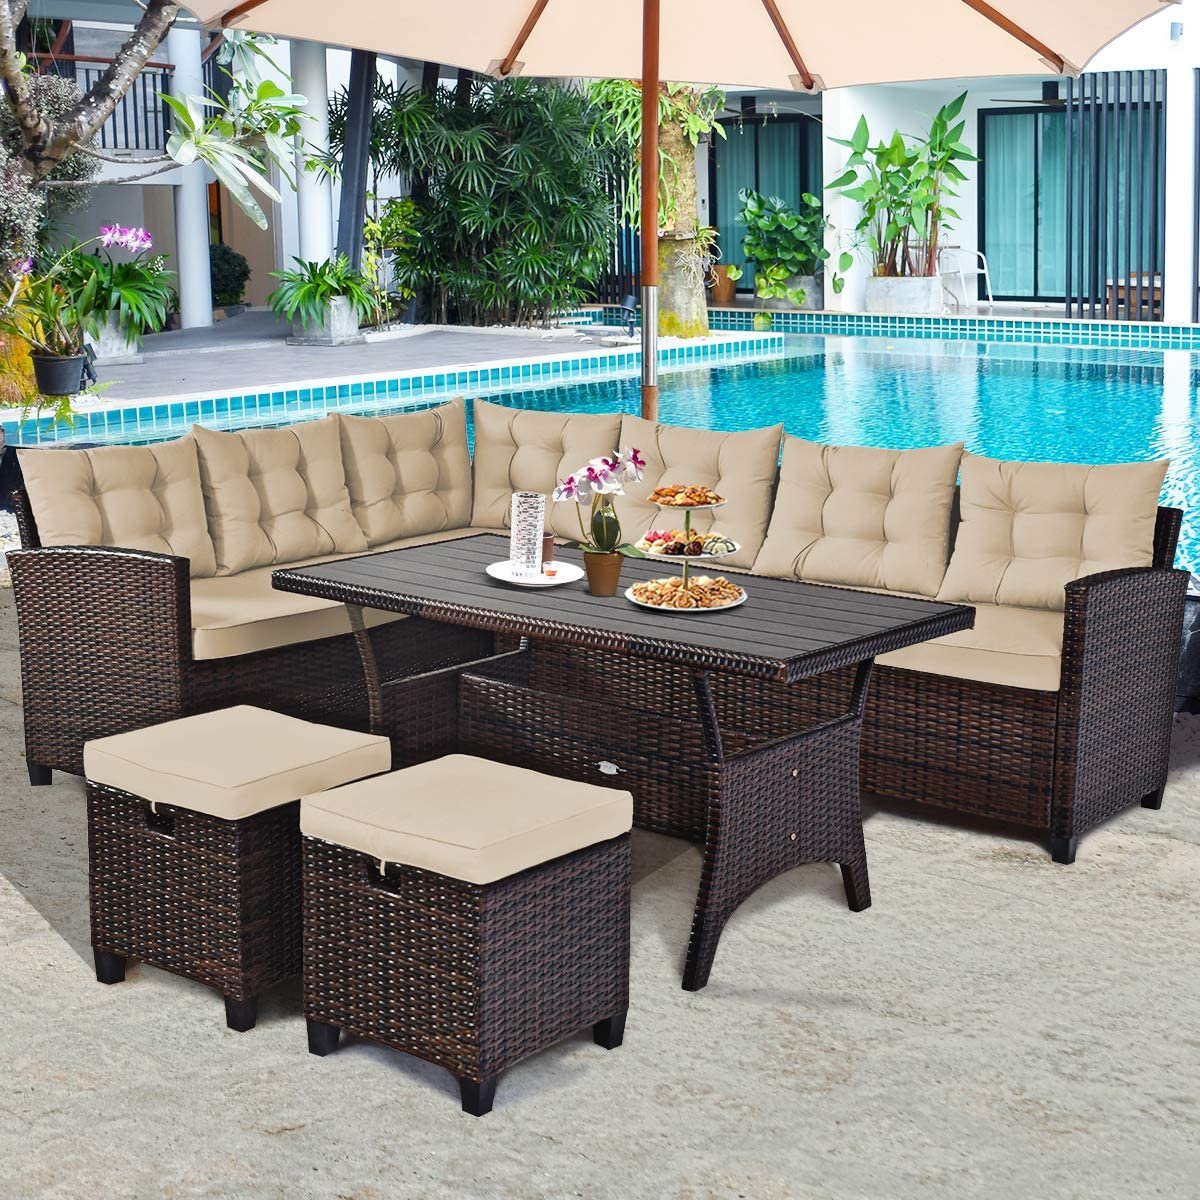 Tangkula 5 Piece Outdoor Patio Set with Cushions